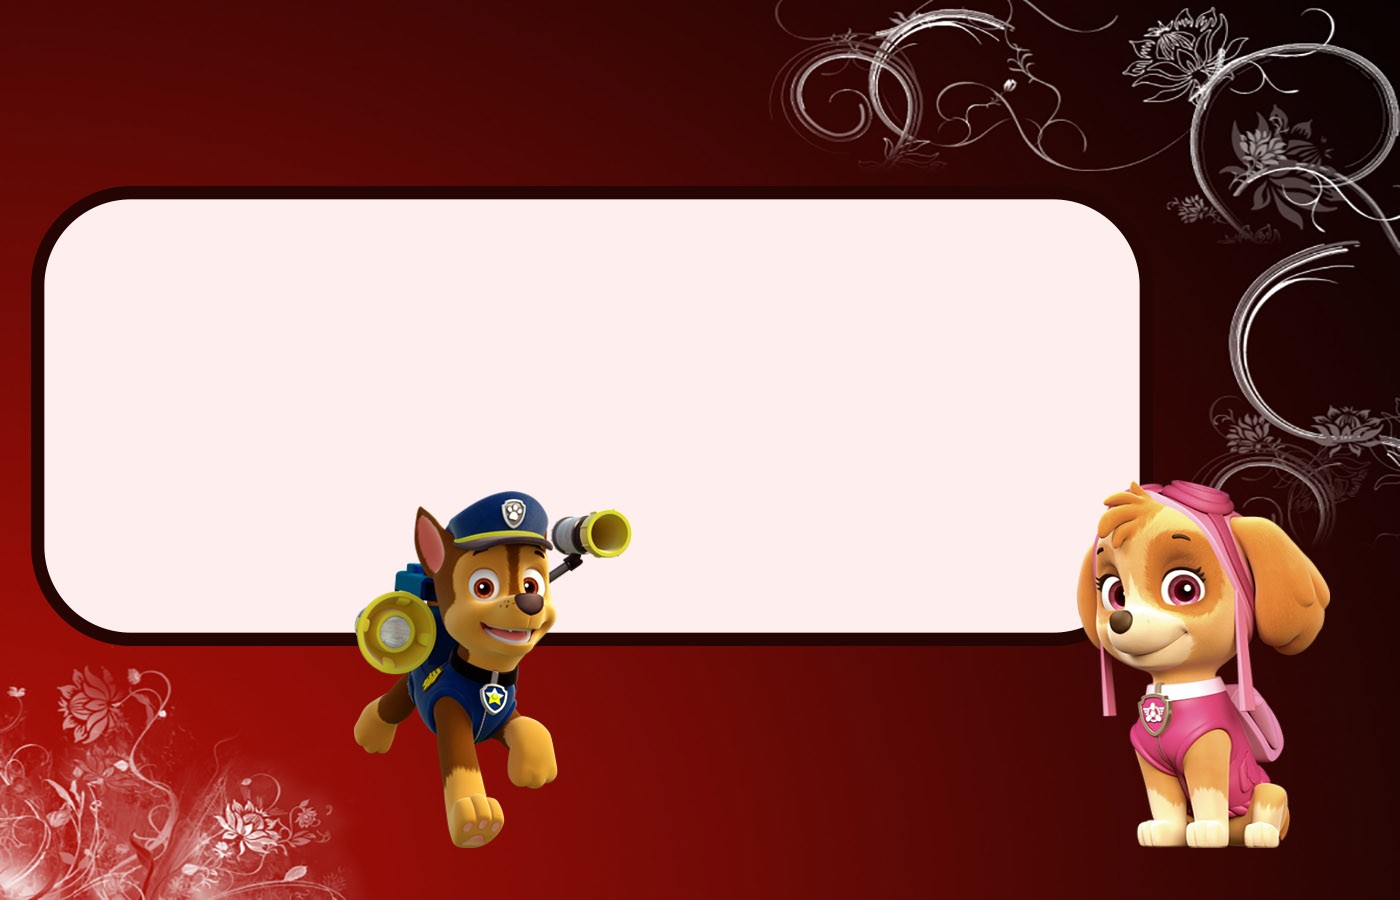 Free Printable Paw Patrol Invitation Template Chase And Skye